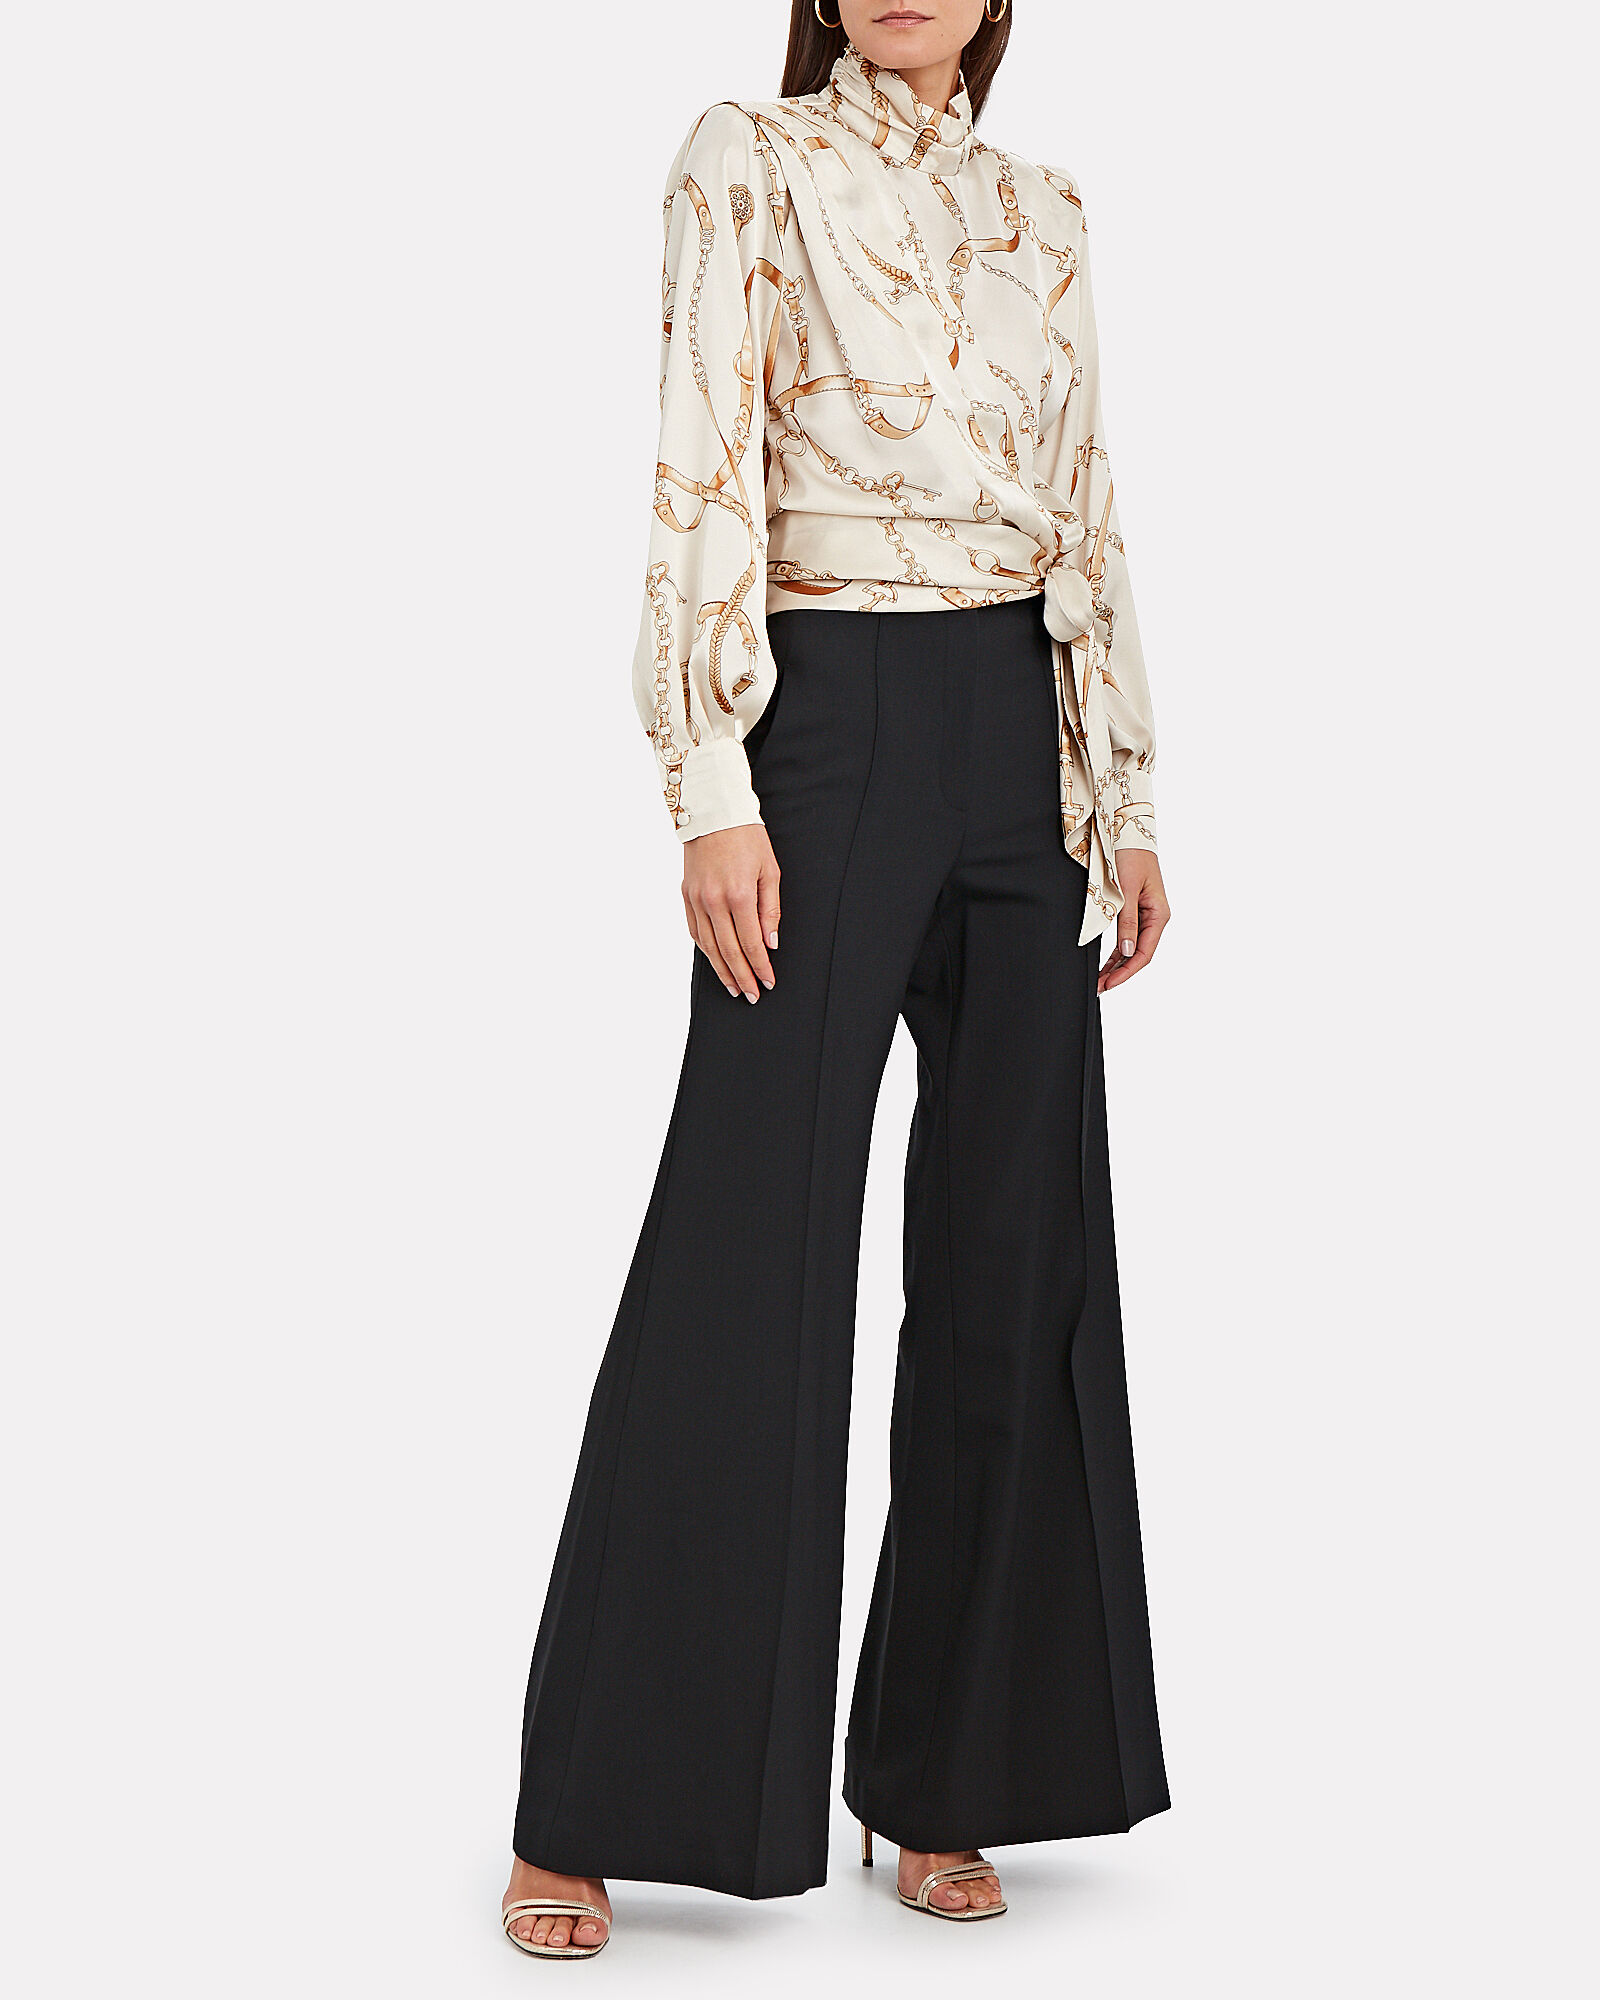 Lincoln High-Waist Flared Trousers, BLACK, hi-res